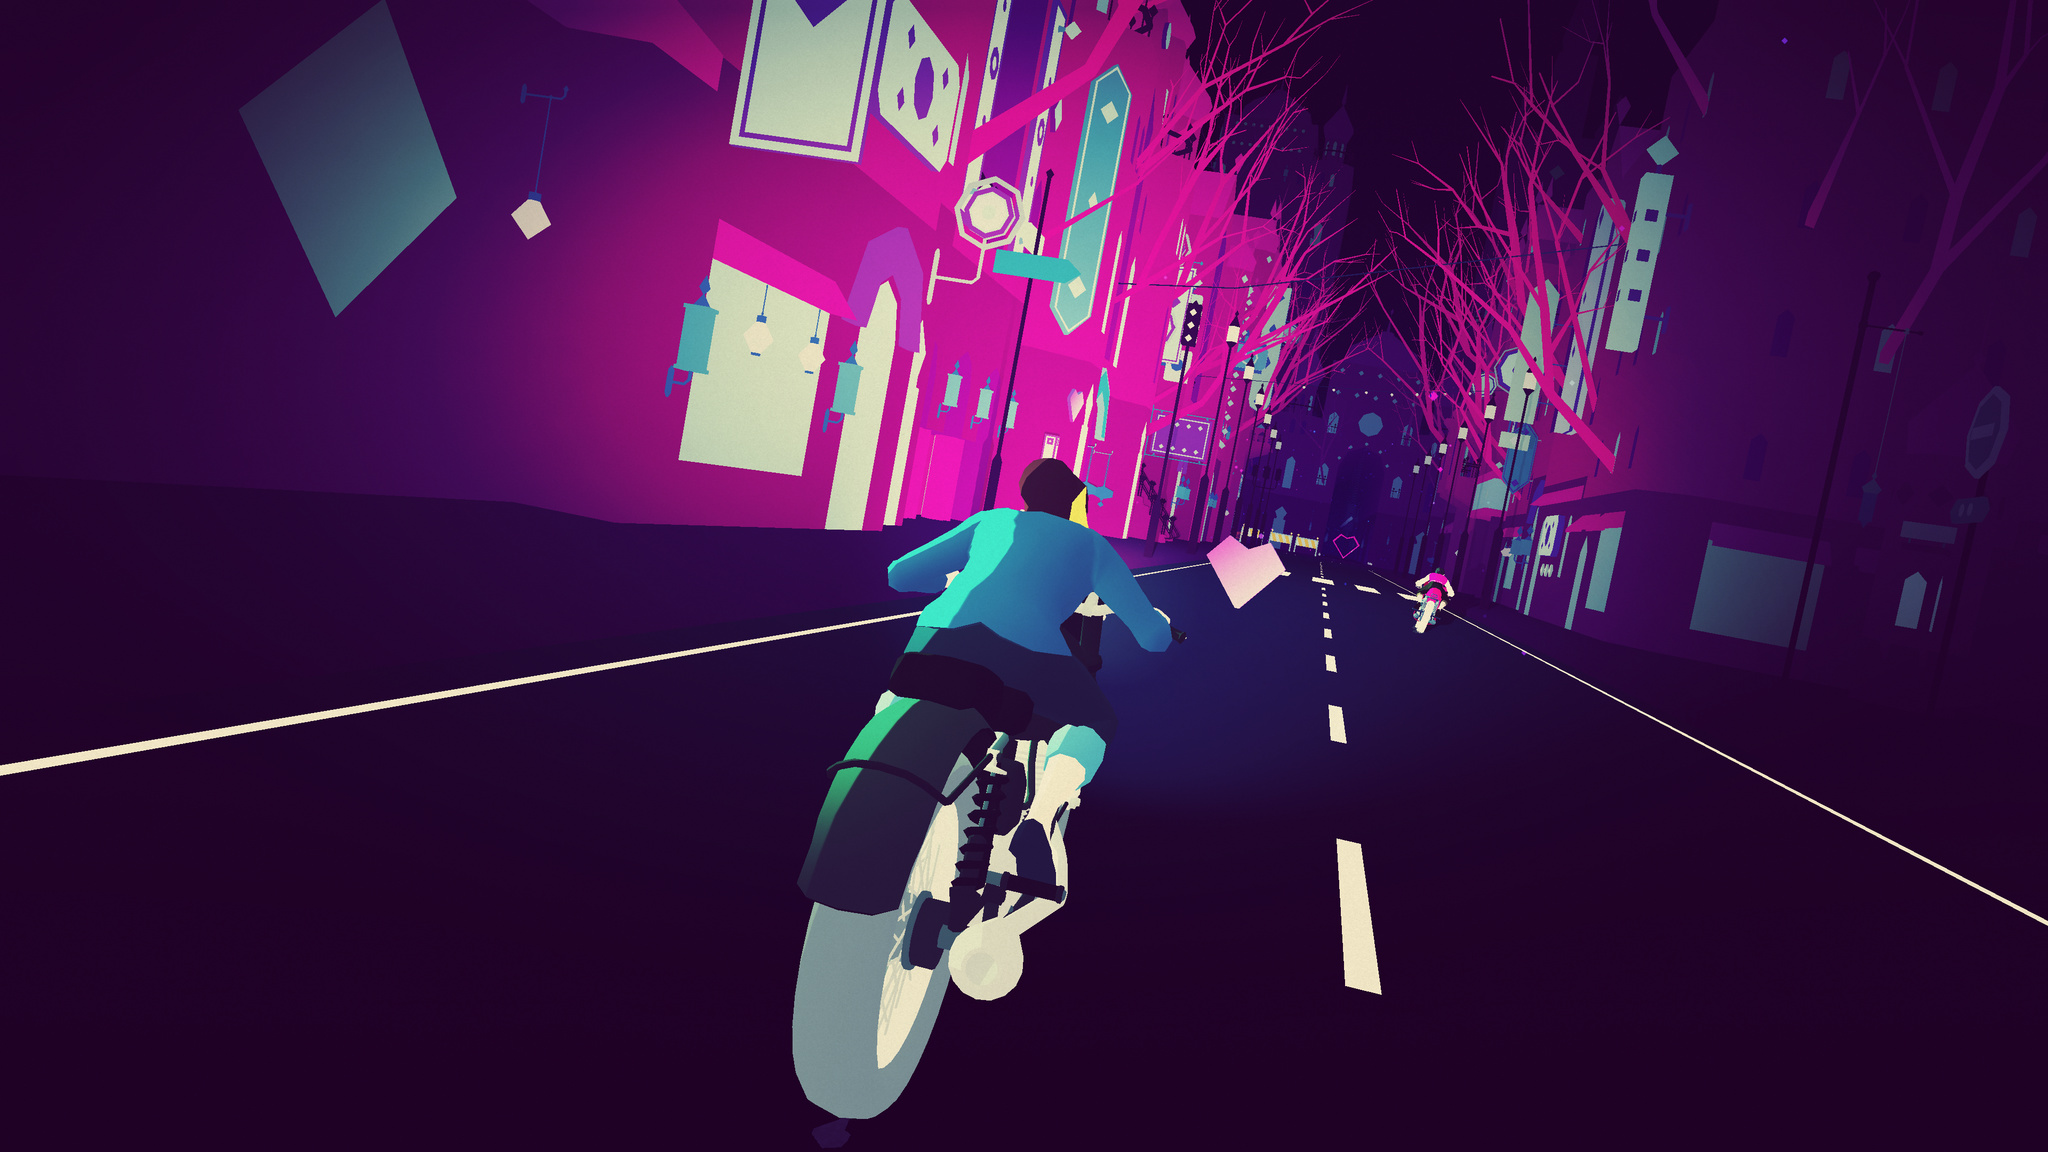 Protagonist rides a motorcycle down the street